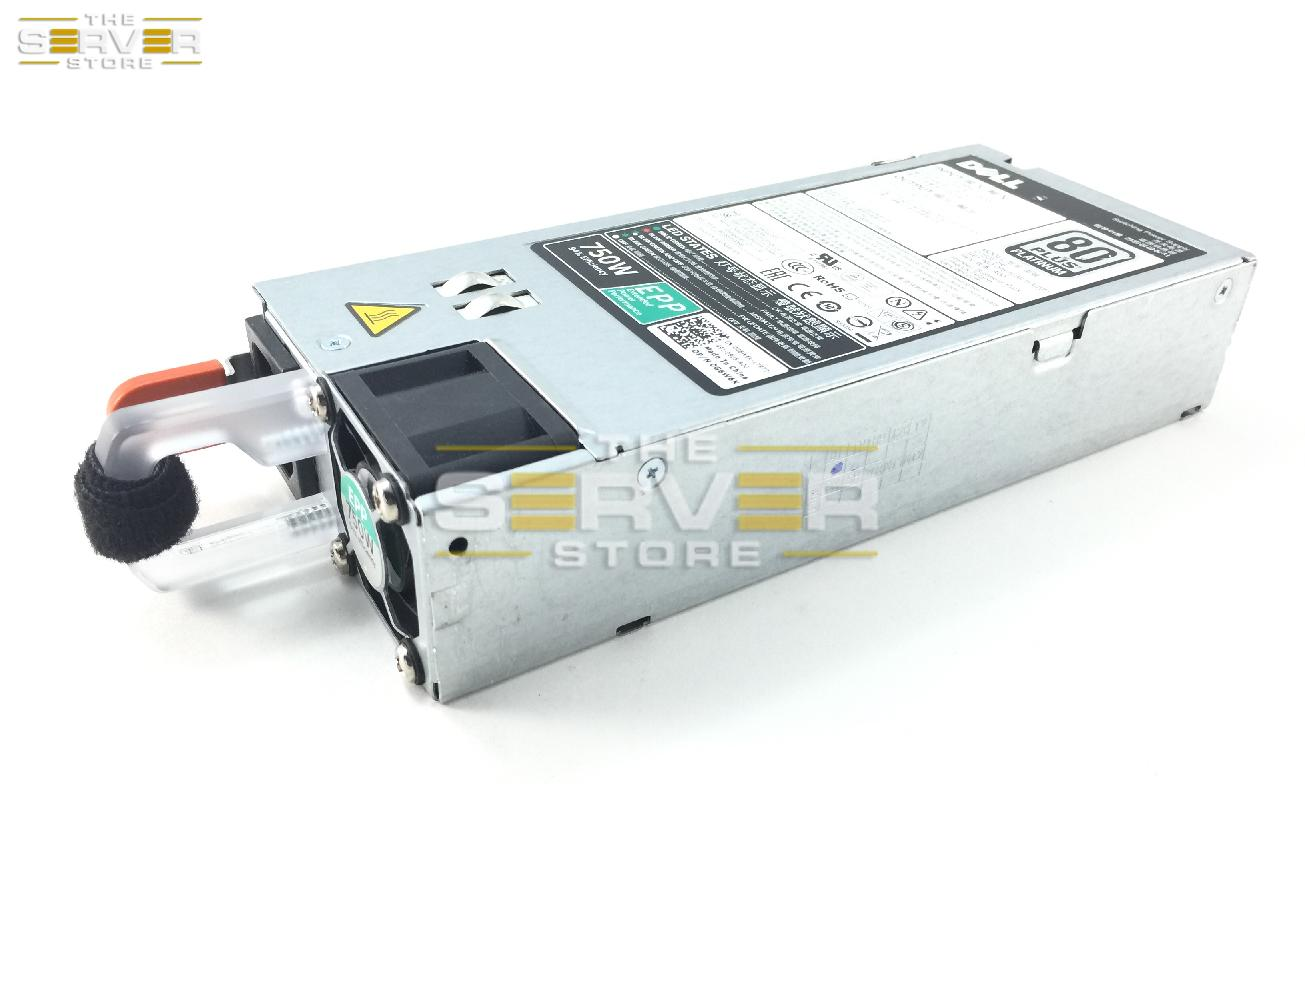 Dell PowerEdge R630 R730xd 750W 80-Plus Platinum Power Supply, G6W6K